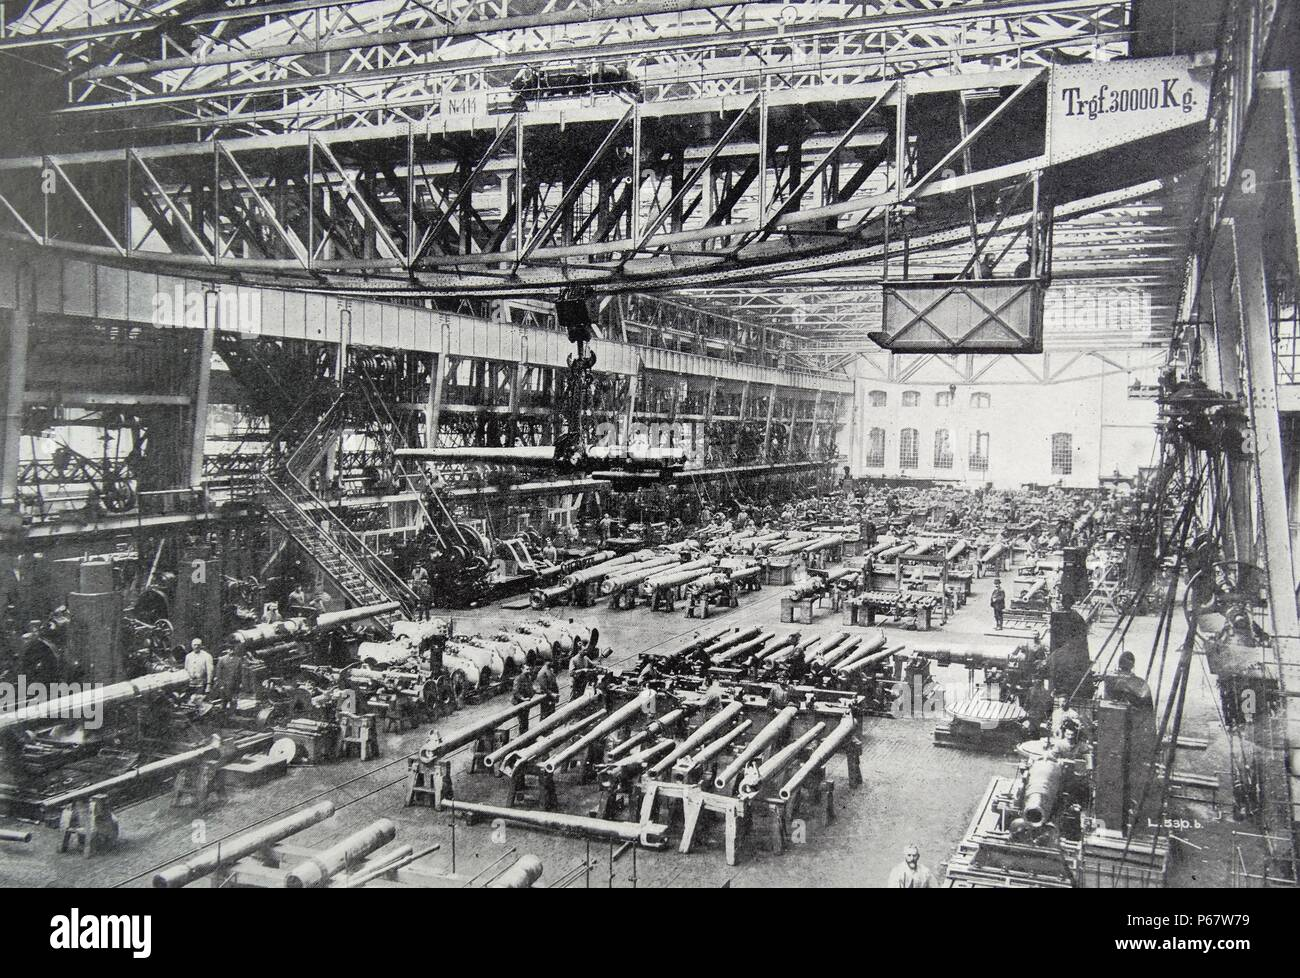 Krupps armaments factory in Germany during in the first world war - Stock Image